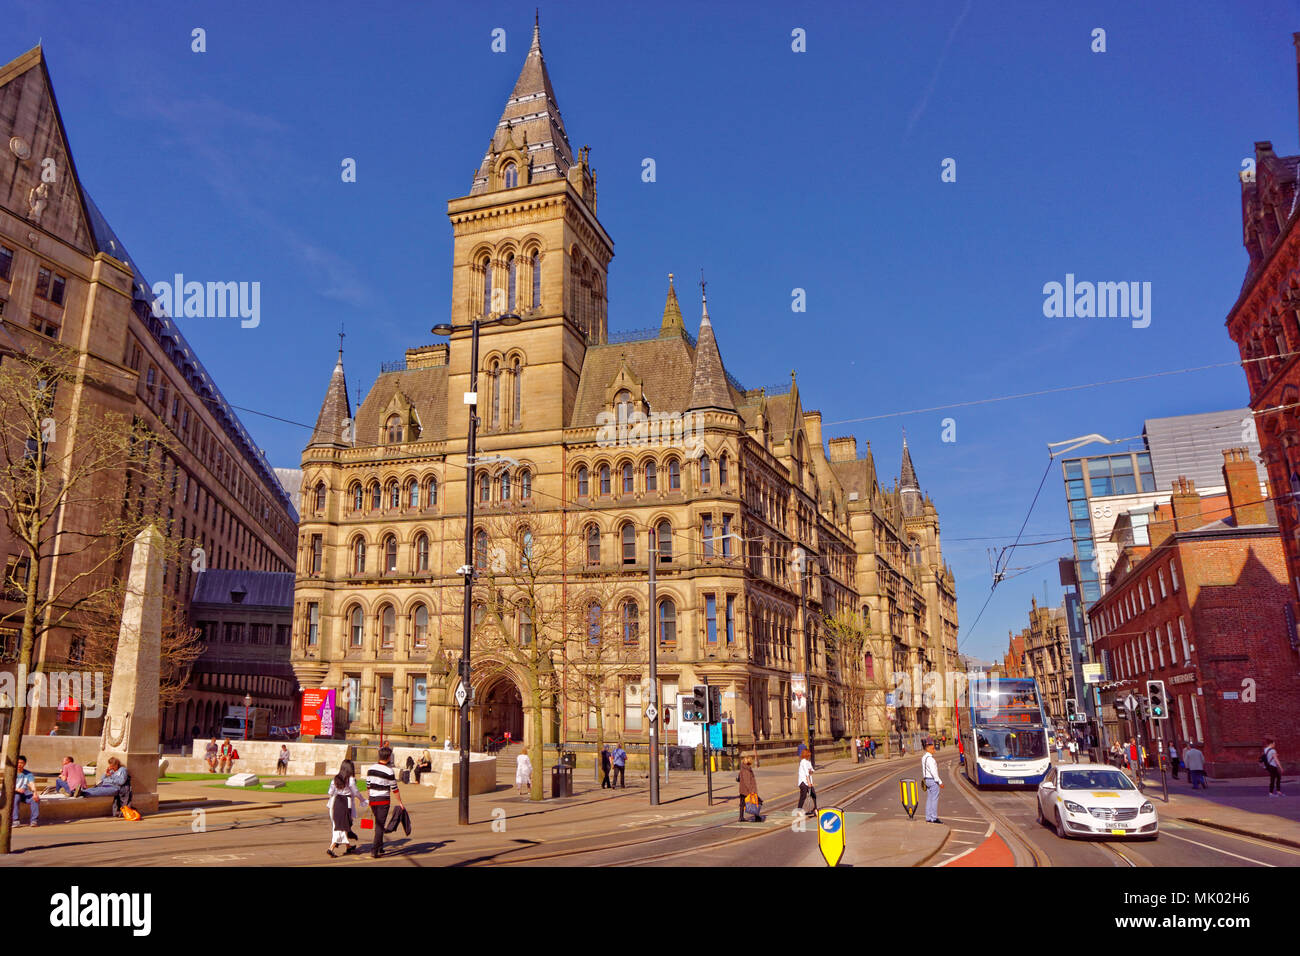 Manchester Town Hall east facing exit and the cenotaph area at Princess Street in Manchester city centre, Greater Manchester, England, UK. - Stock Image